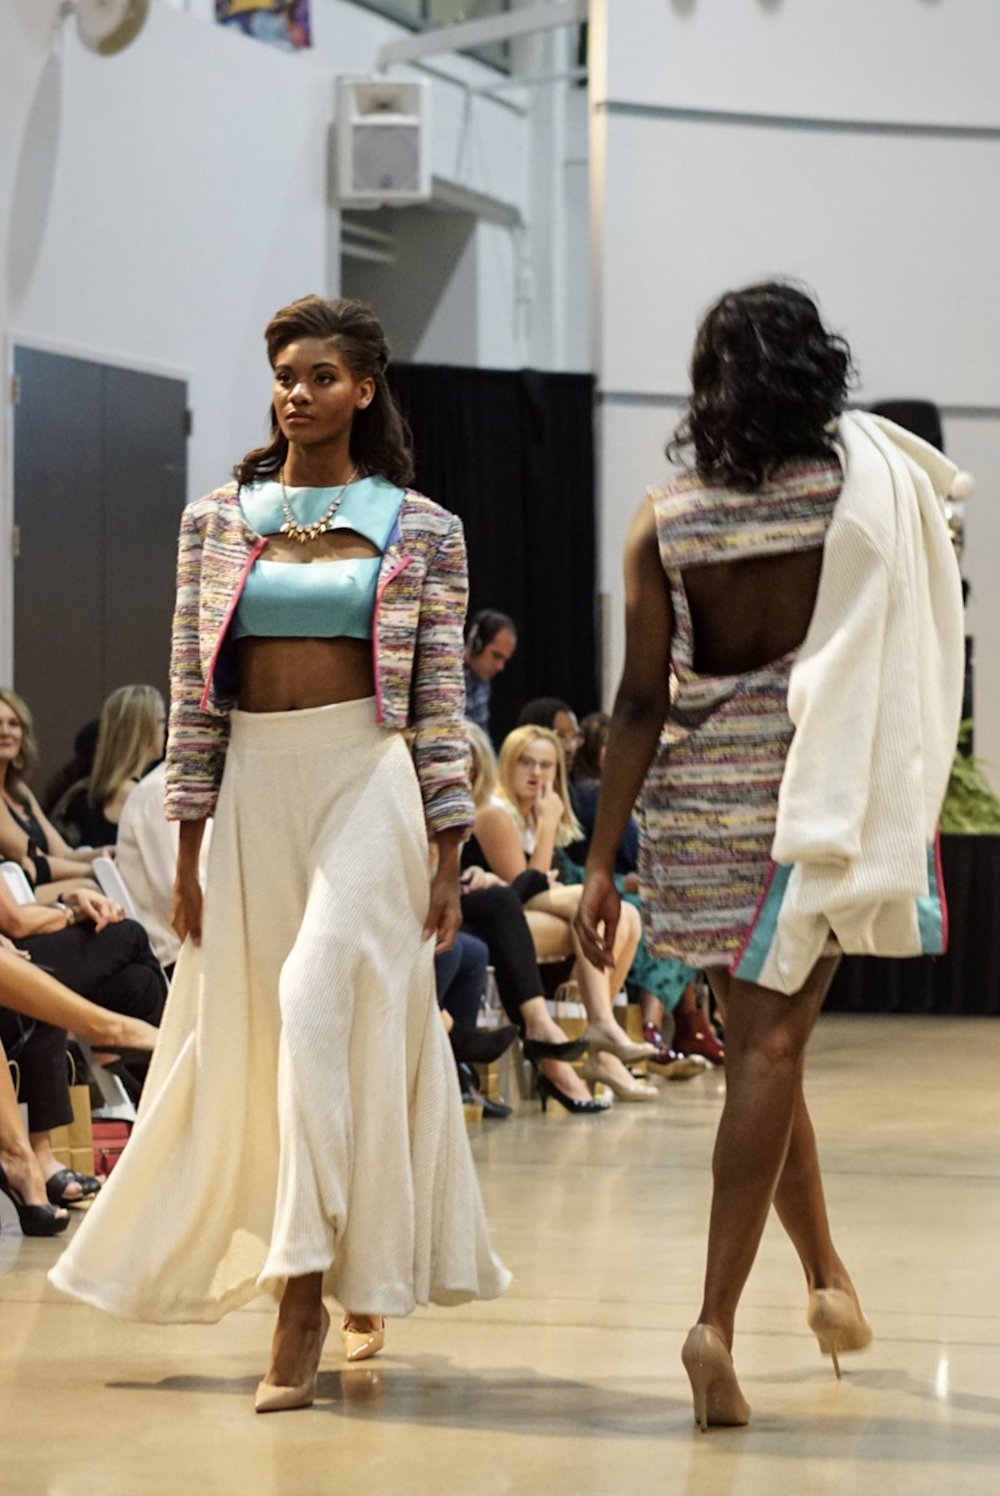 Designs by Aleah Rosenau, Lindenwood University student